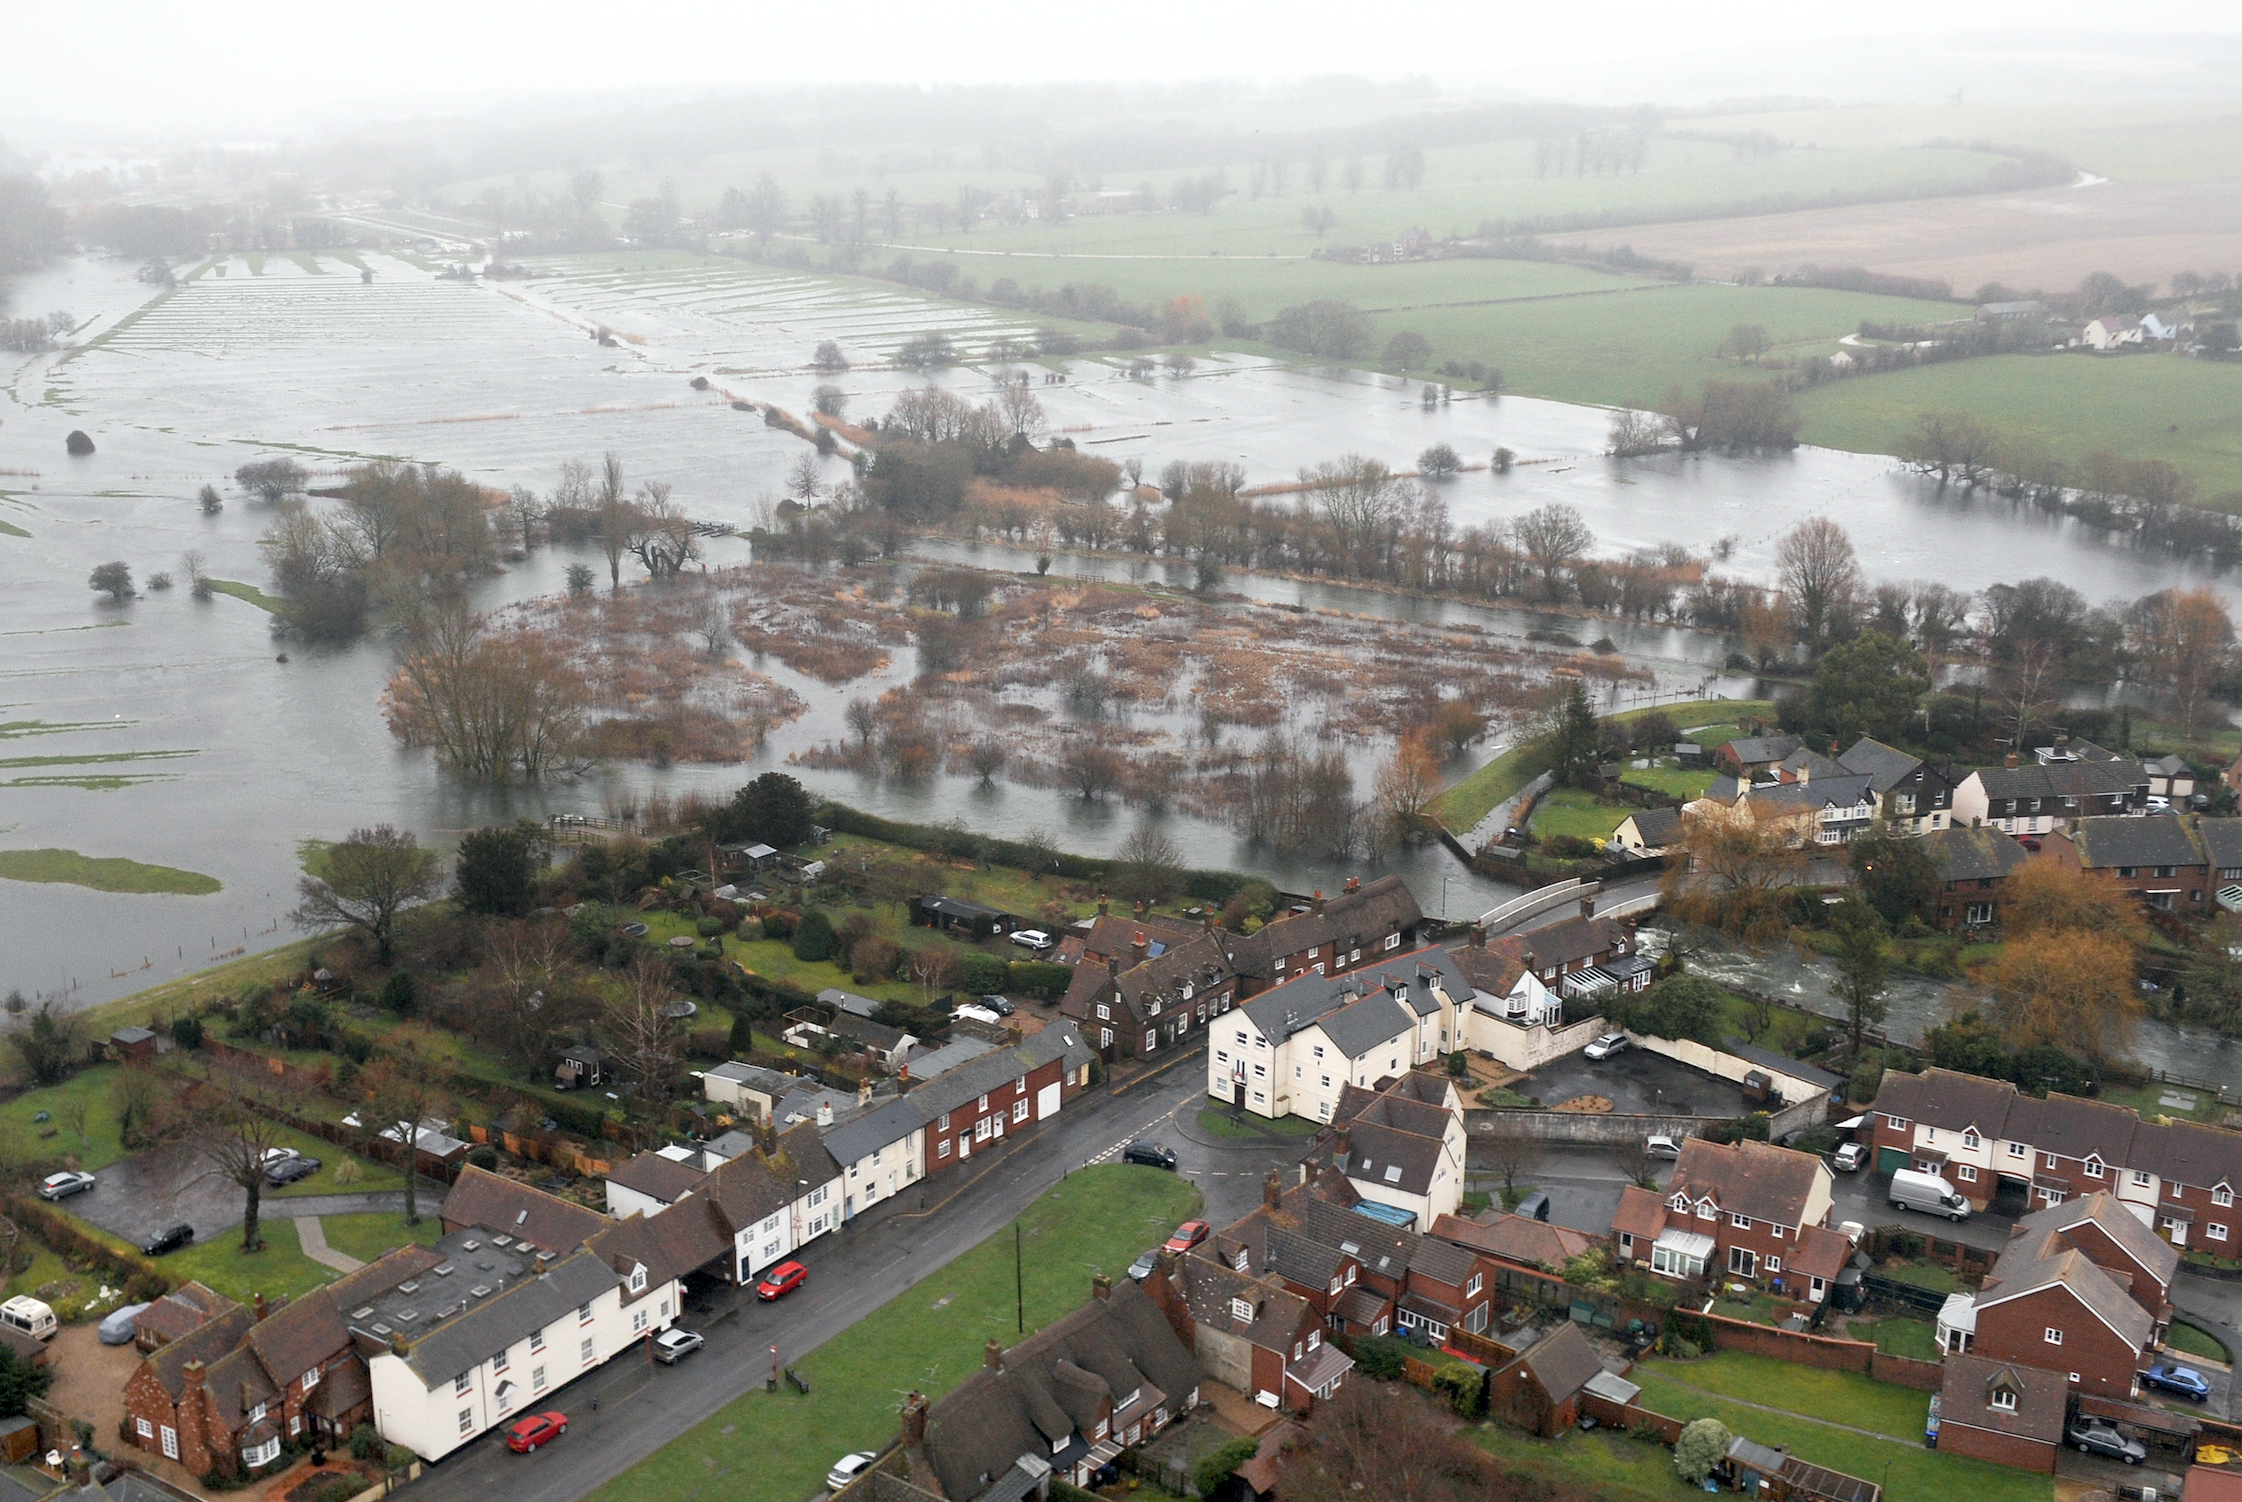 Flooding in Oxfordshire, 2014